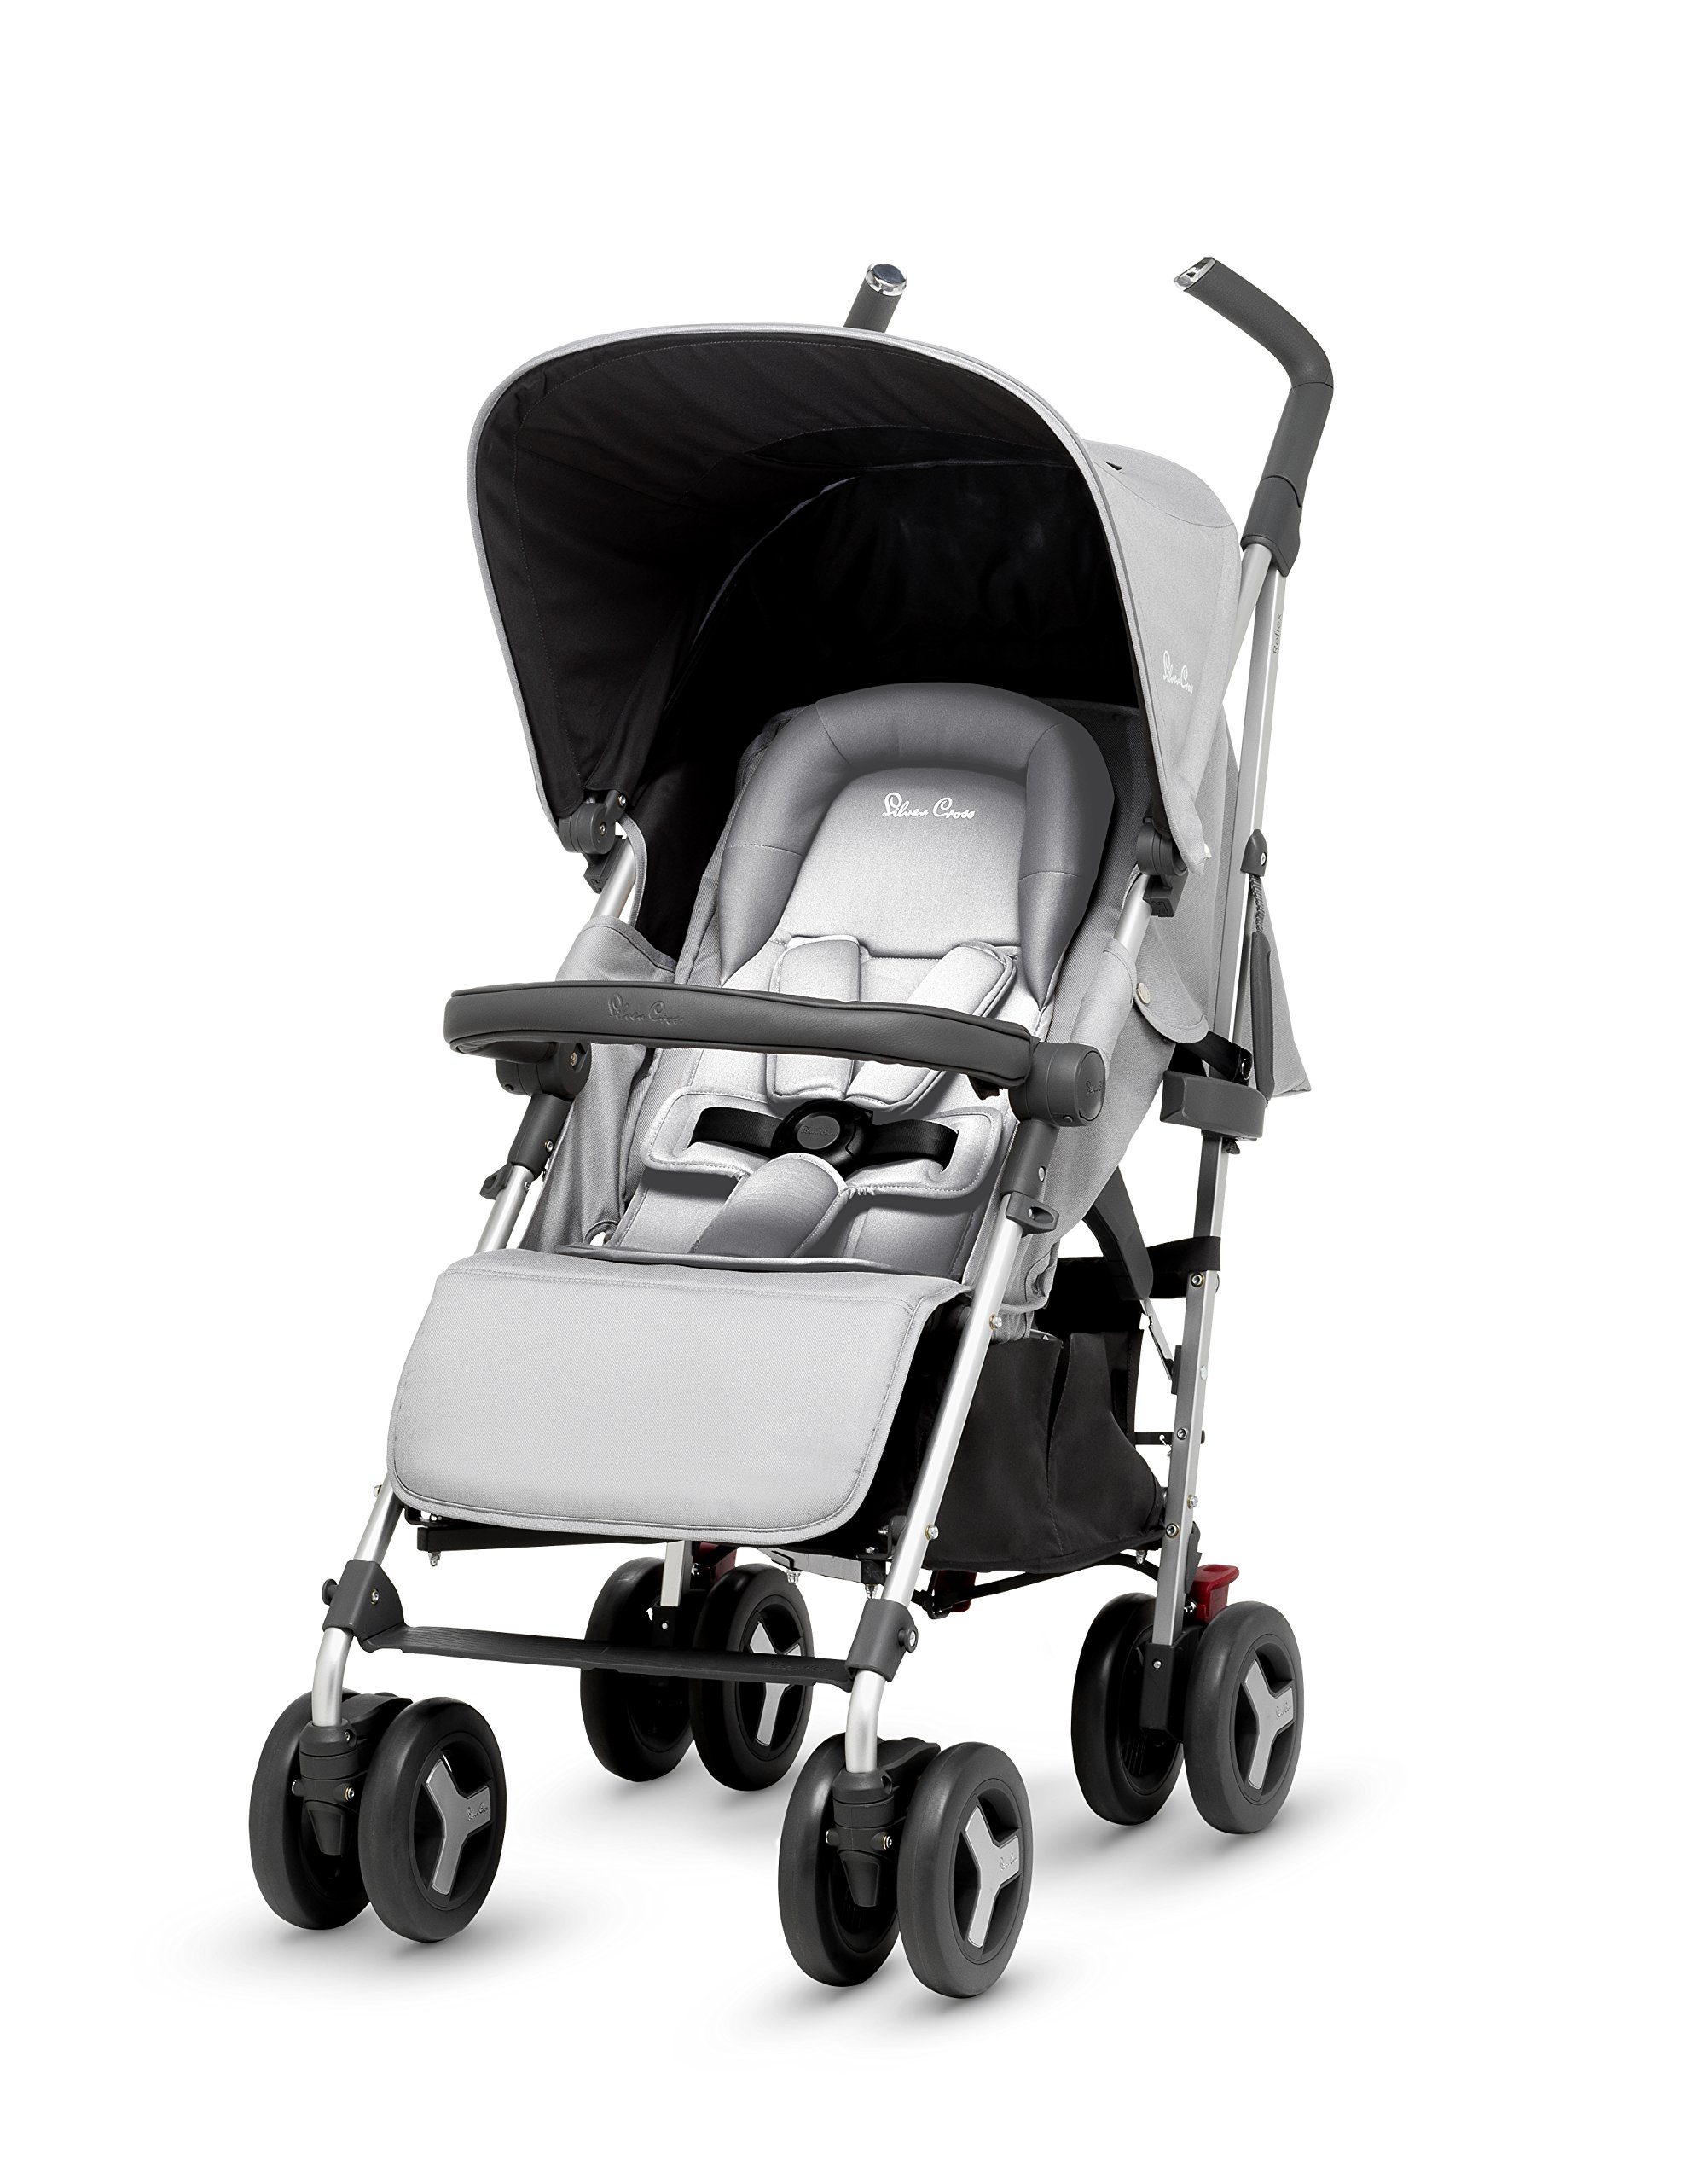 Silver Cross Reflex Stroller, Platinum Silver Cross Reflex is an advanced stroller, suitable from birth up to 25kg, with a wealth of features 5-point Harness Combine with Silver Cross Simplicity Car Seat to create a convenient Travel System 4